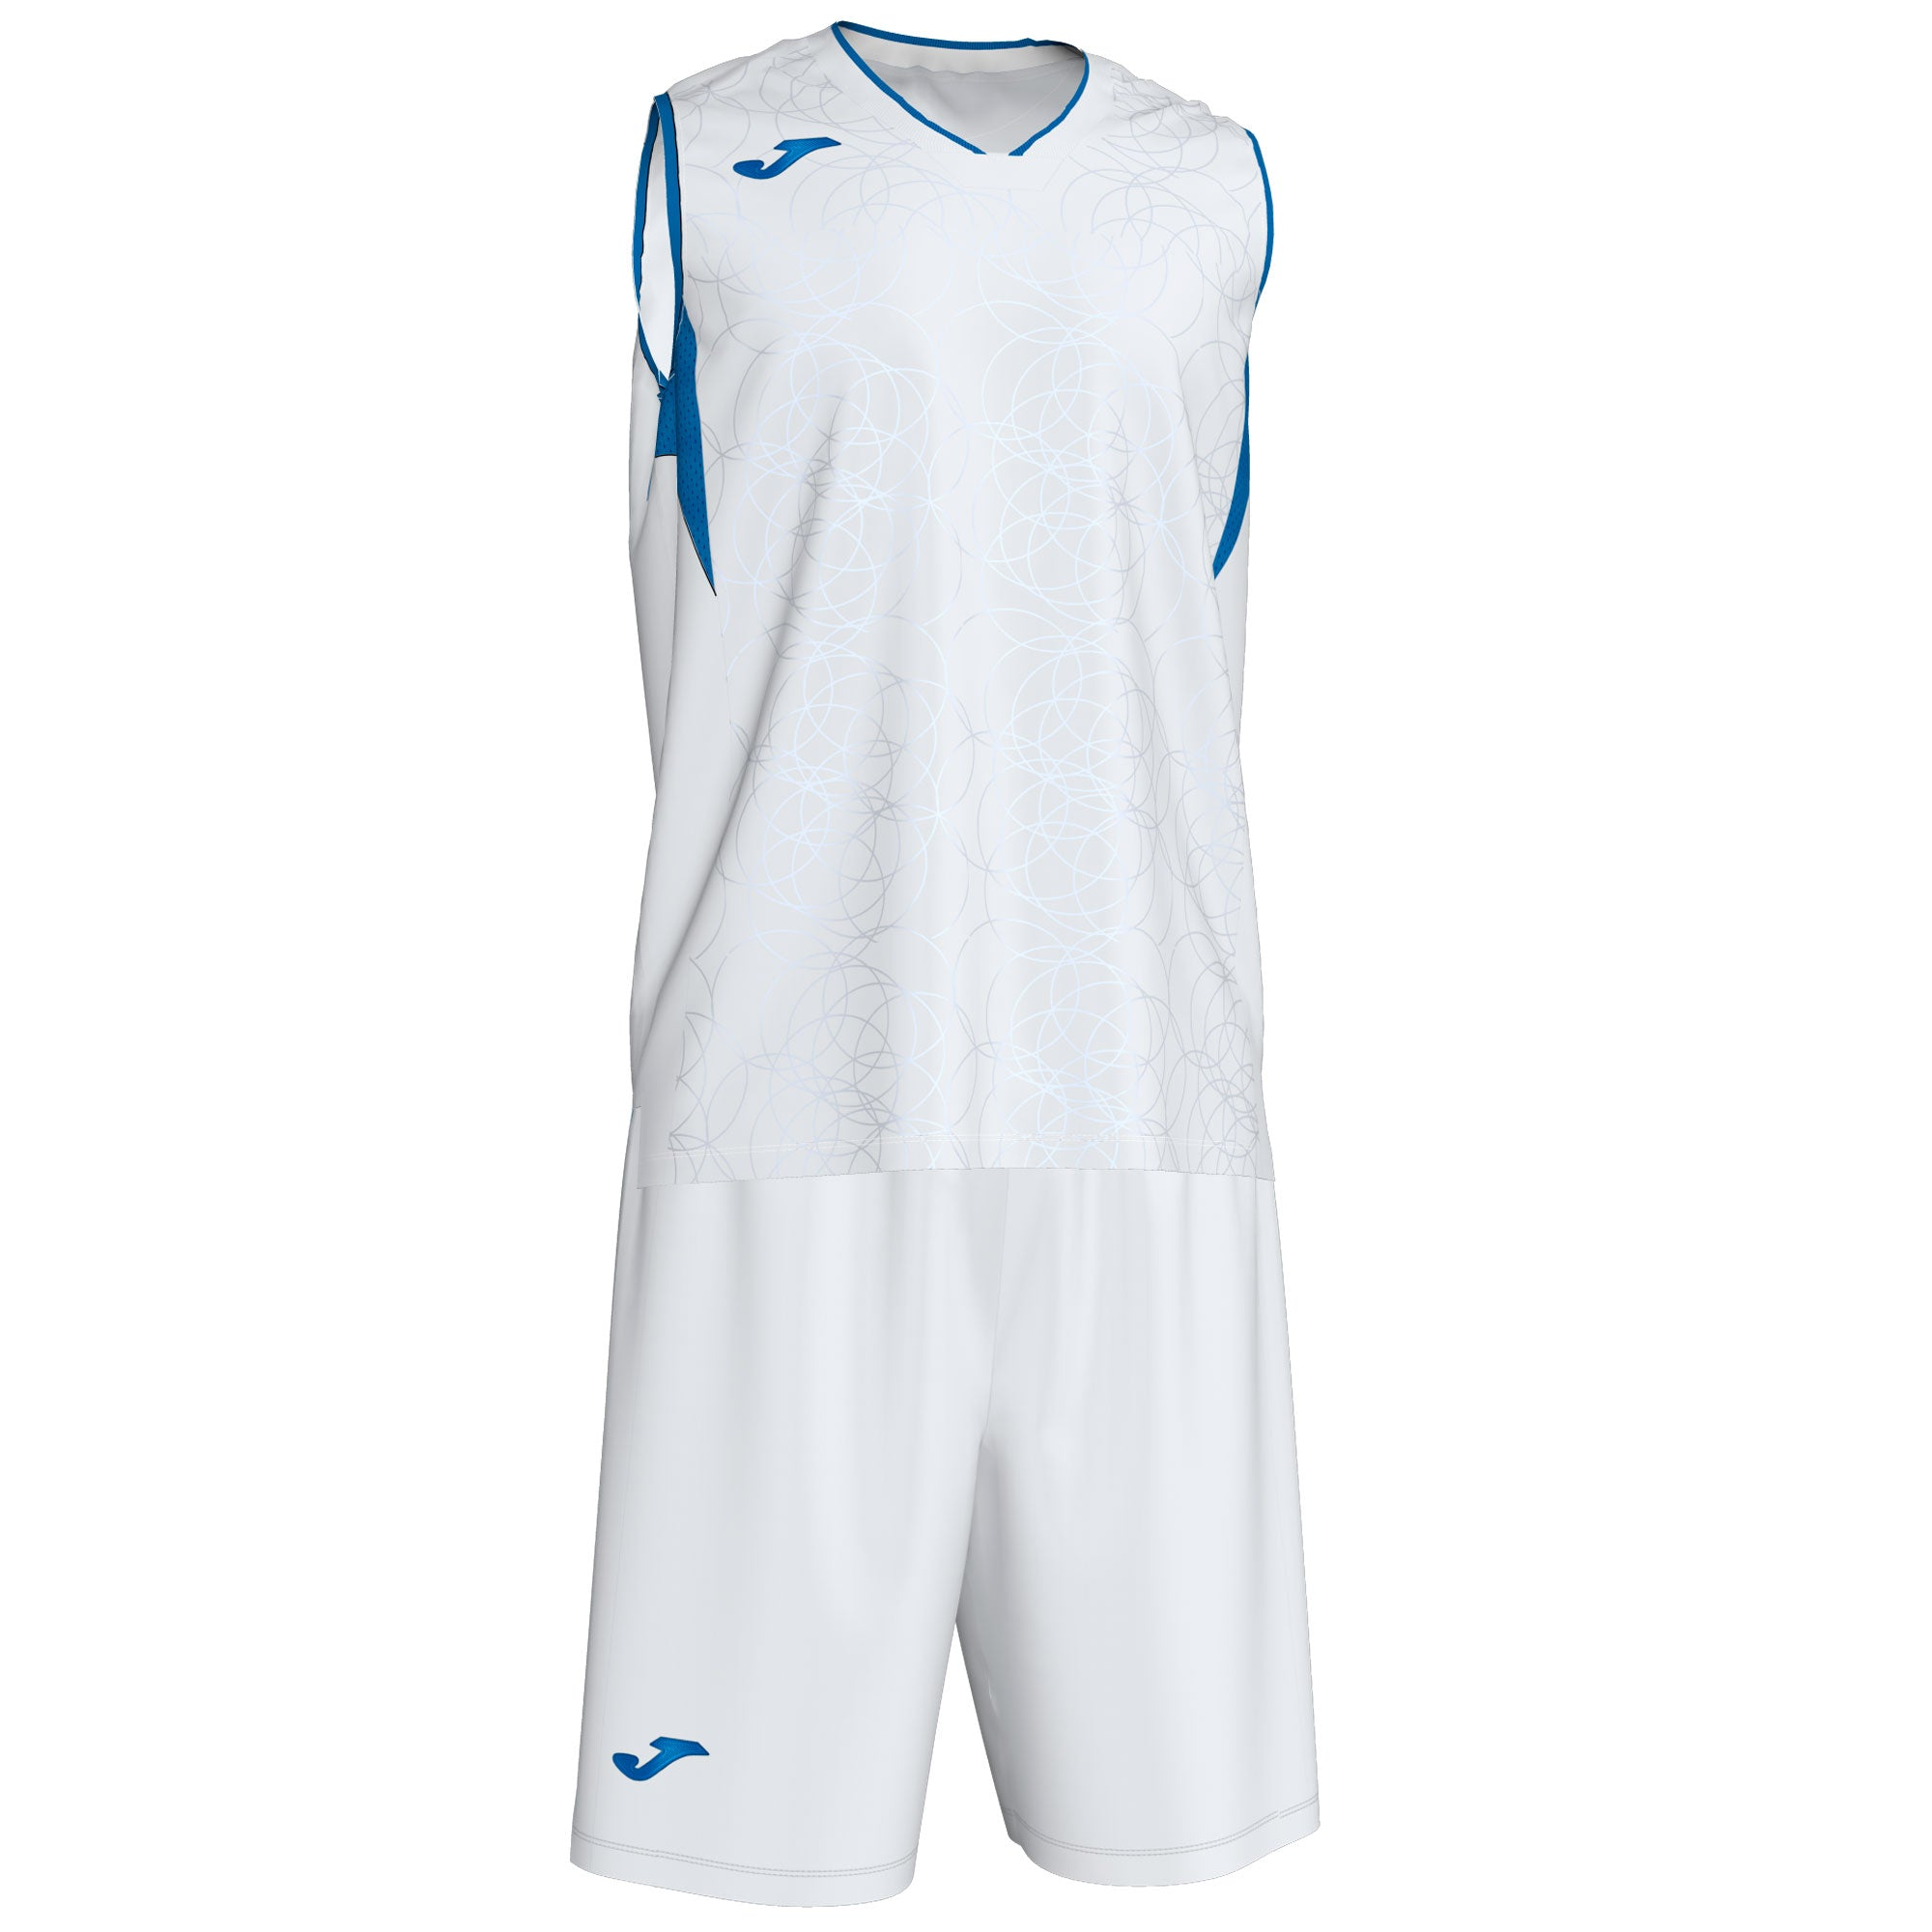 Teamwear - Joma Campus Kit - White/Royal Blue - JO-101373-207